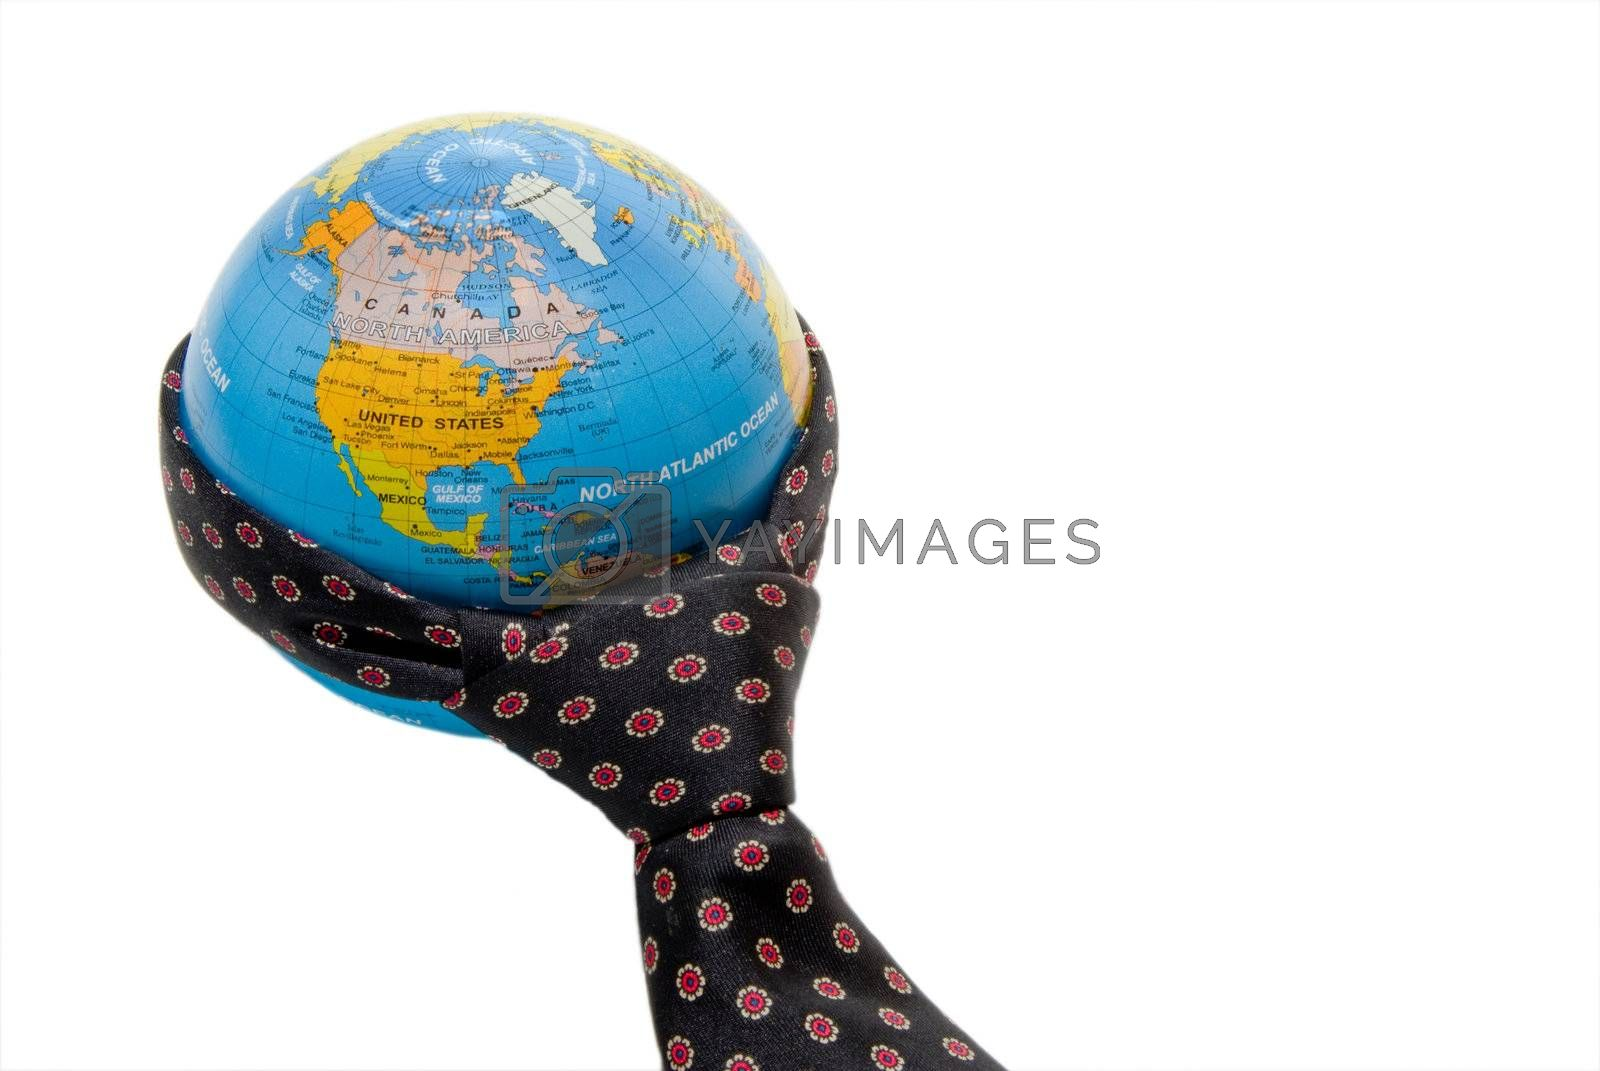 A necktie wrapped aroung a globe of the world.